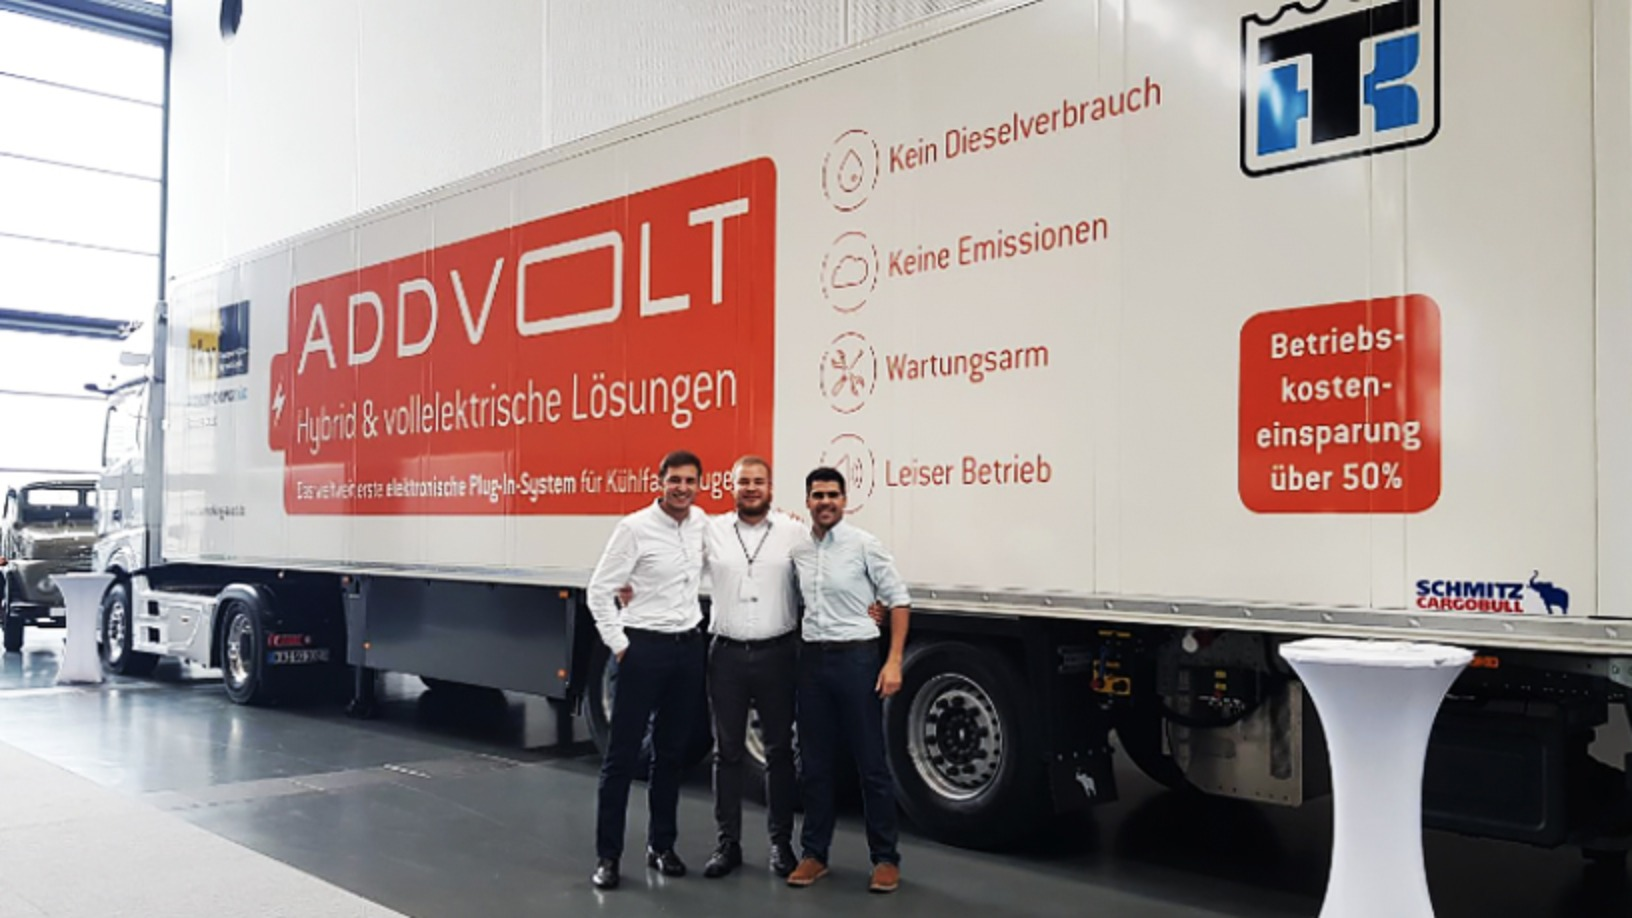 AddVolt: Taking the diesel out of cold-chain transport to make it cleaner, more efficient